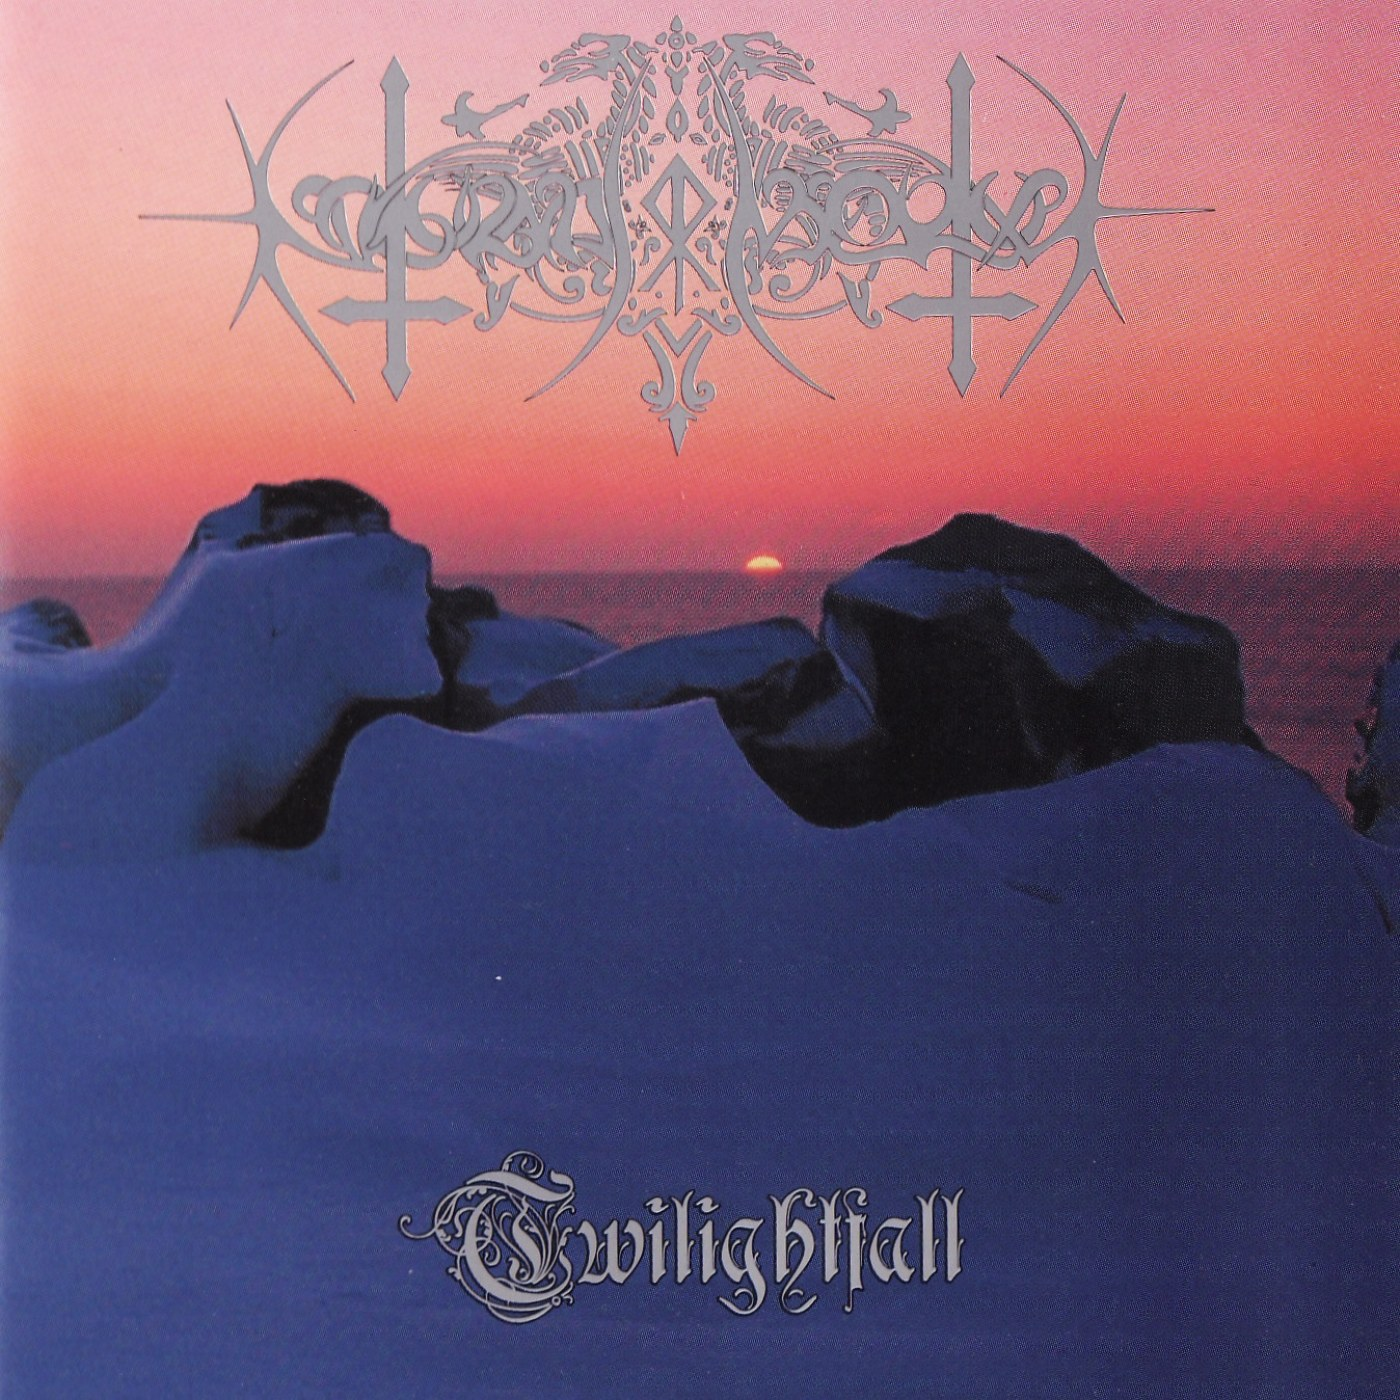 Review for Nokturnal Mortum - Twilightfall